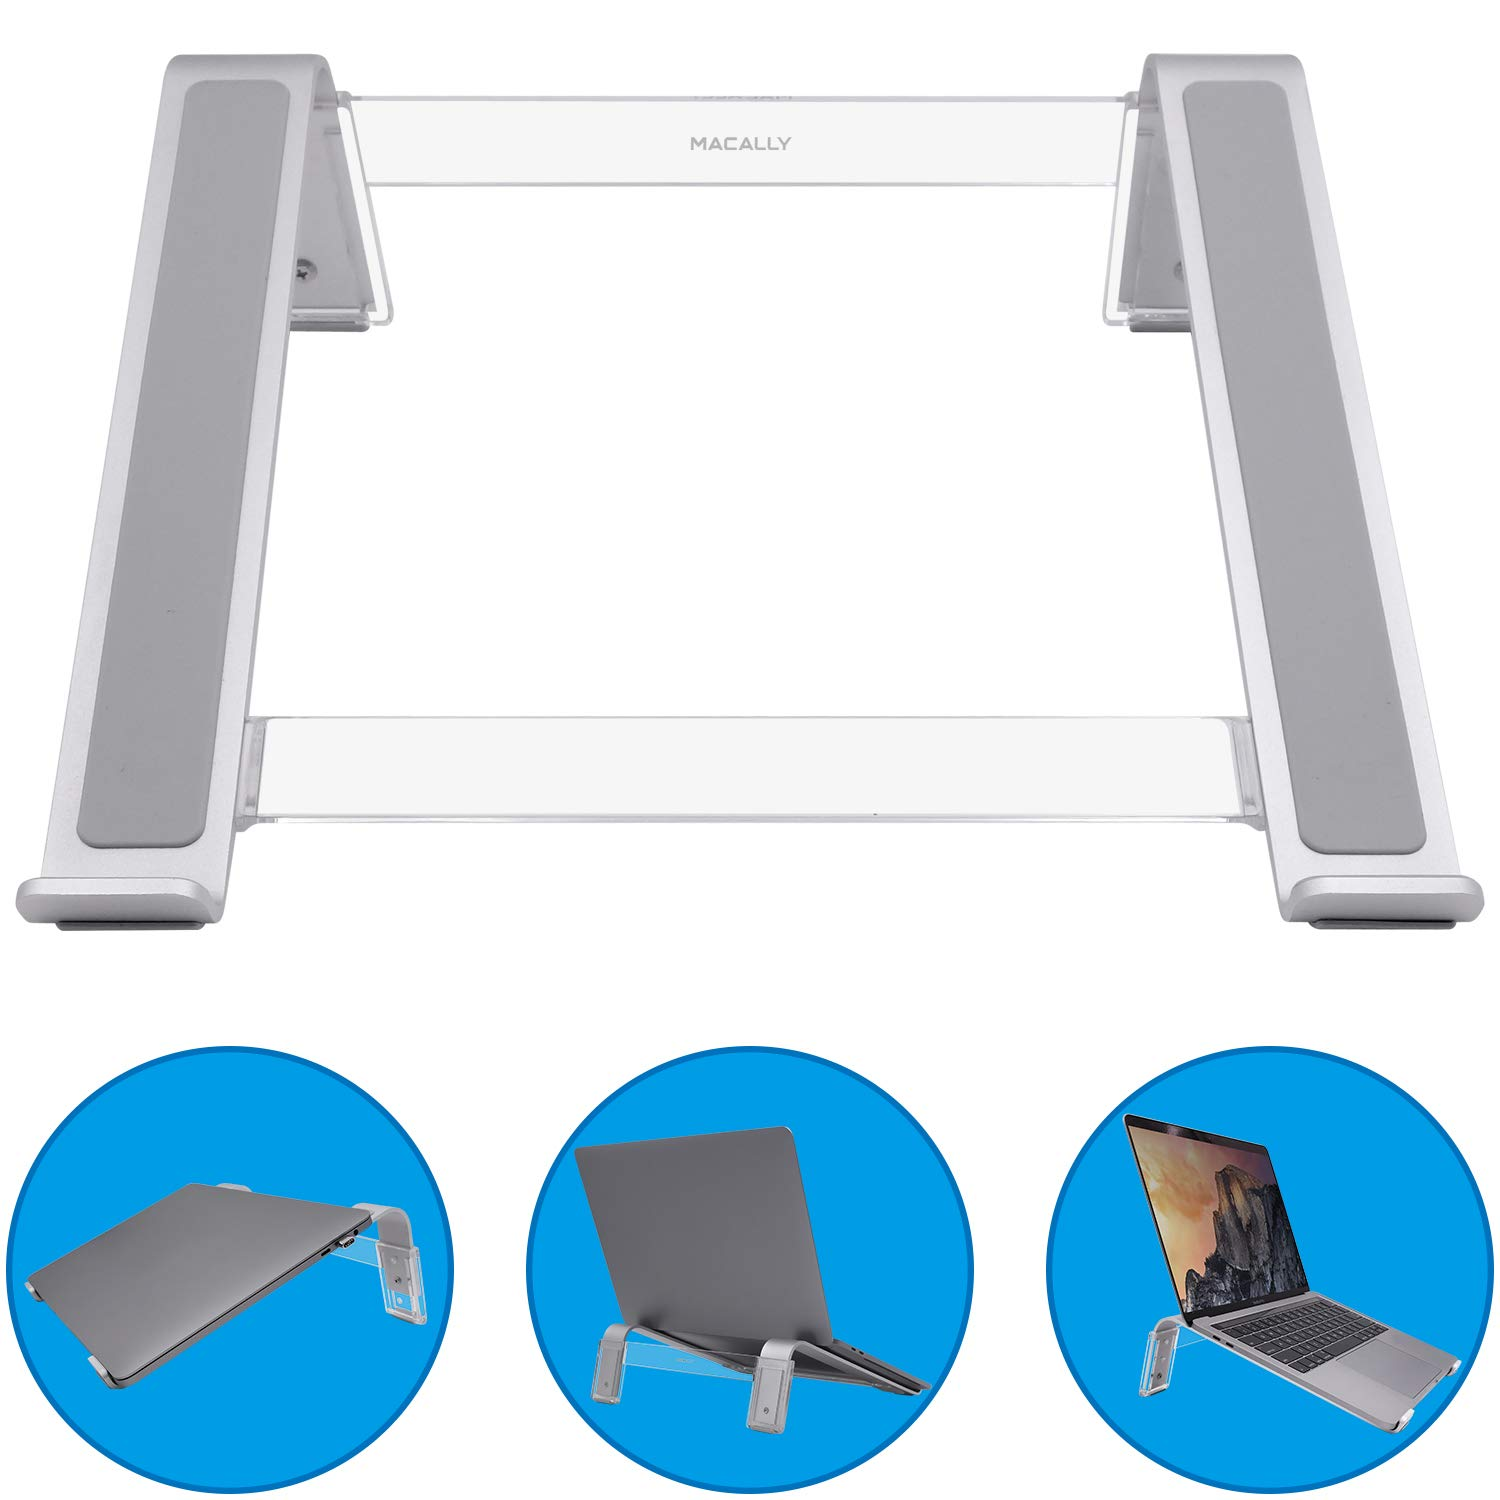 "Macally Adjustable Laptop Stand for Desk - Ventilated Notebook Riser w/ 3 Angle Adjustments for Apple MacBook Pro/Air, Samsung Chromebook, Acer Switch, HP Pavillion, Dell XPS, Up to 17.3""- Aluminum"